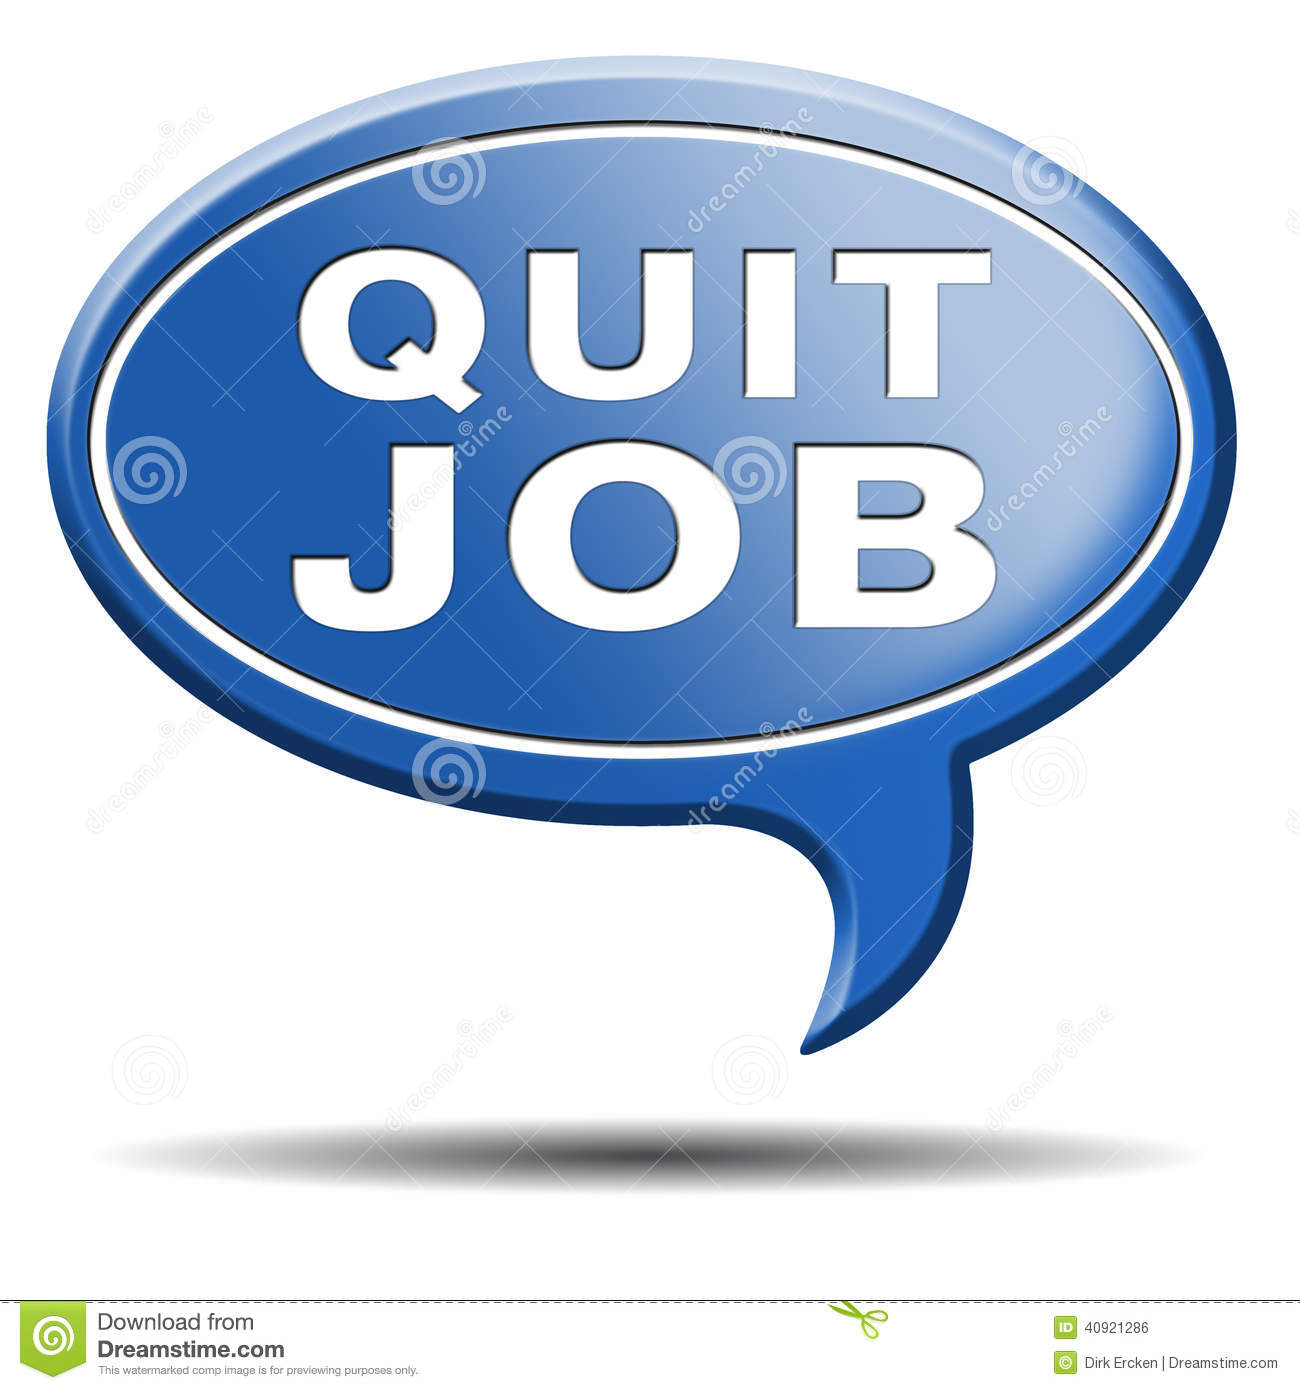 Quit job quitting work for career move